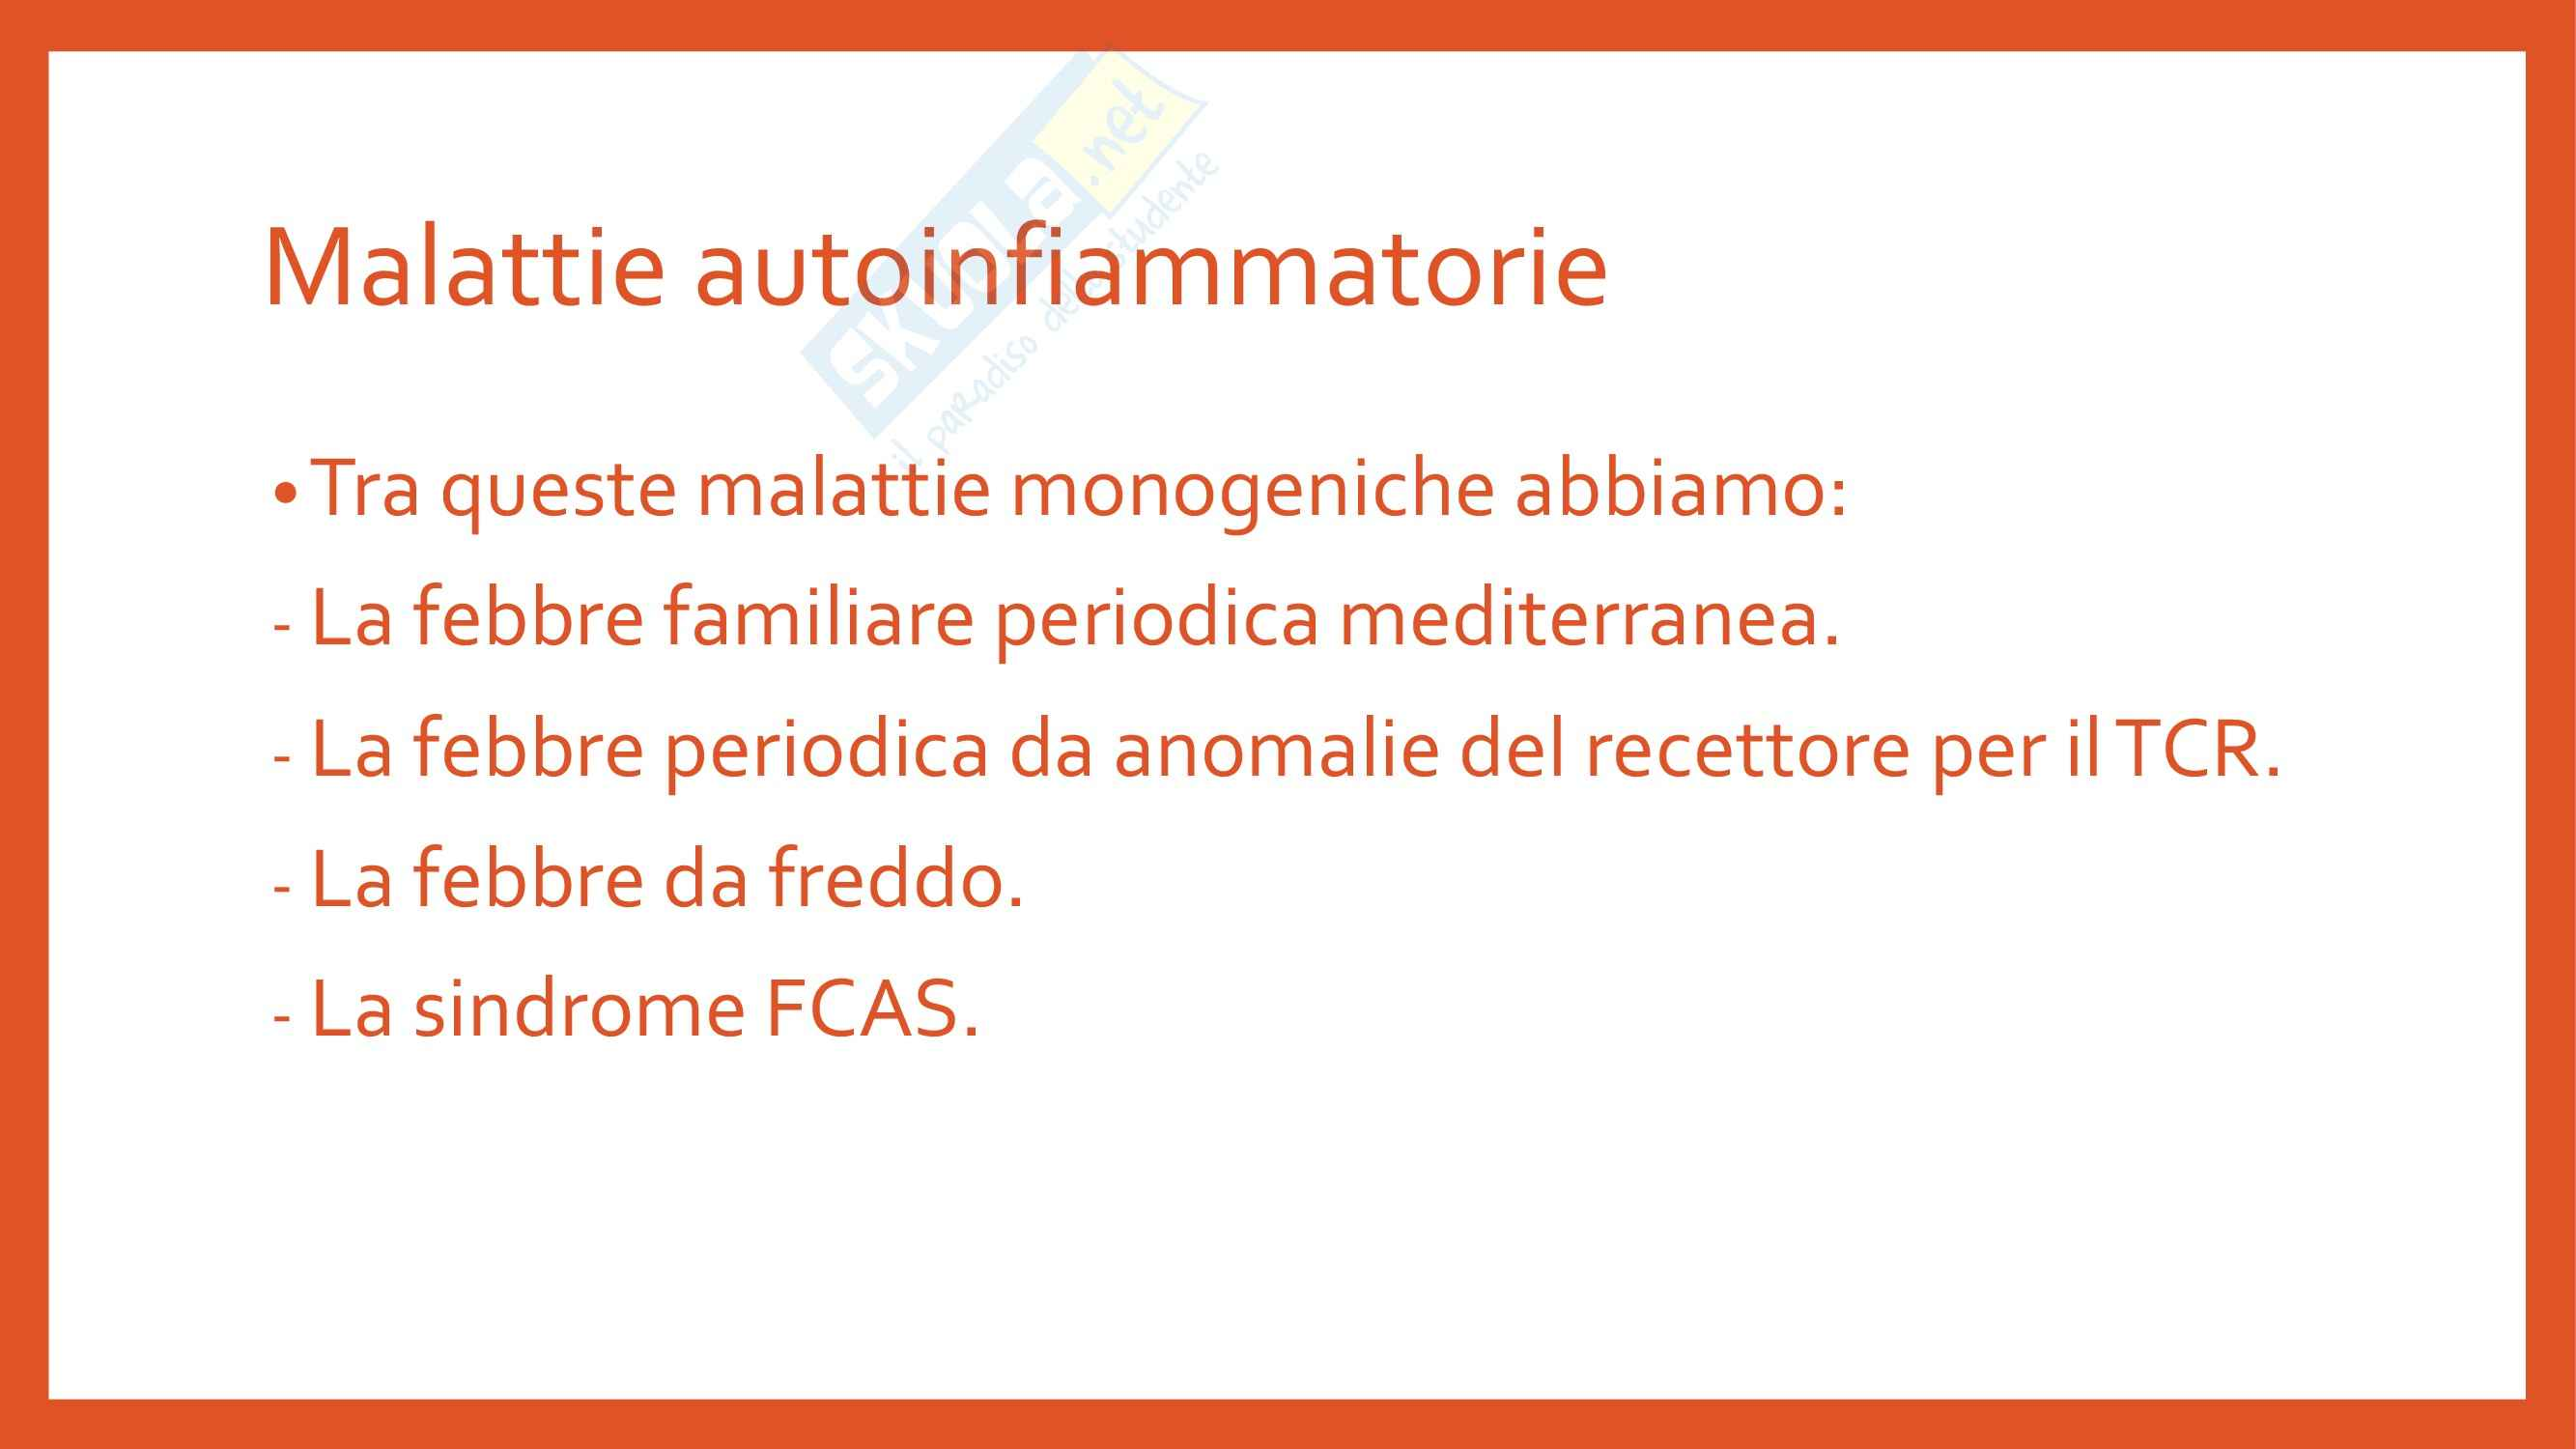 Immunologia - Inflammosoma Pag. 16